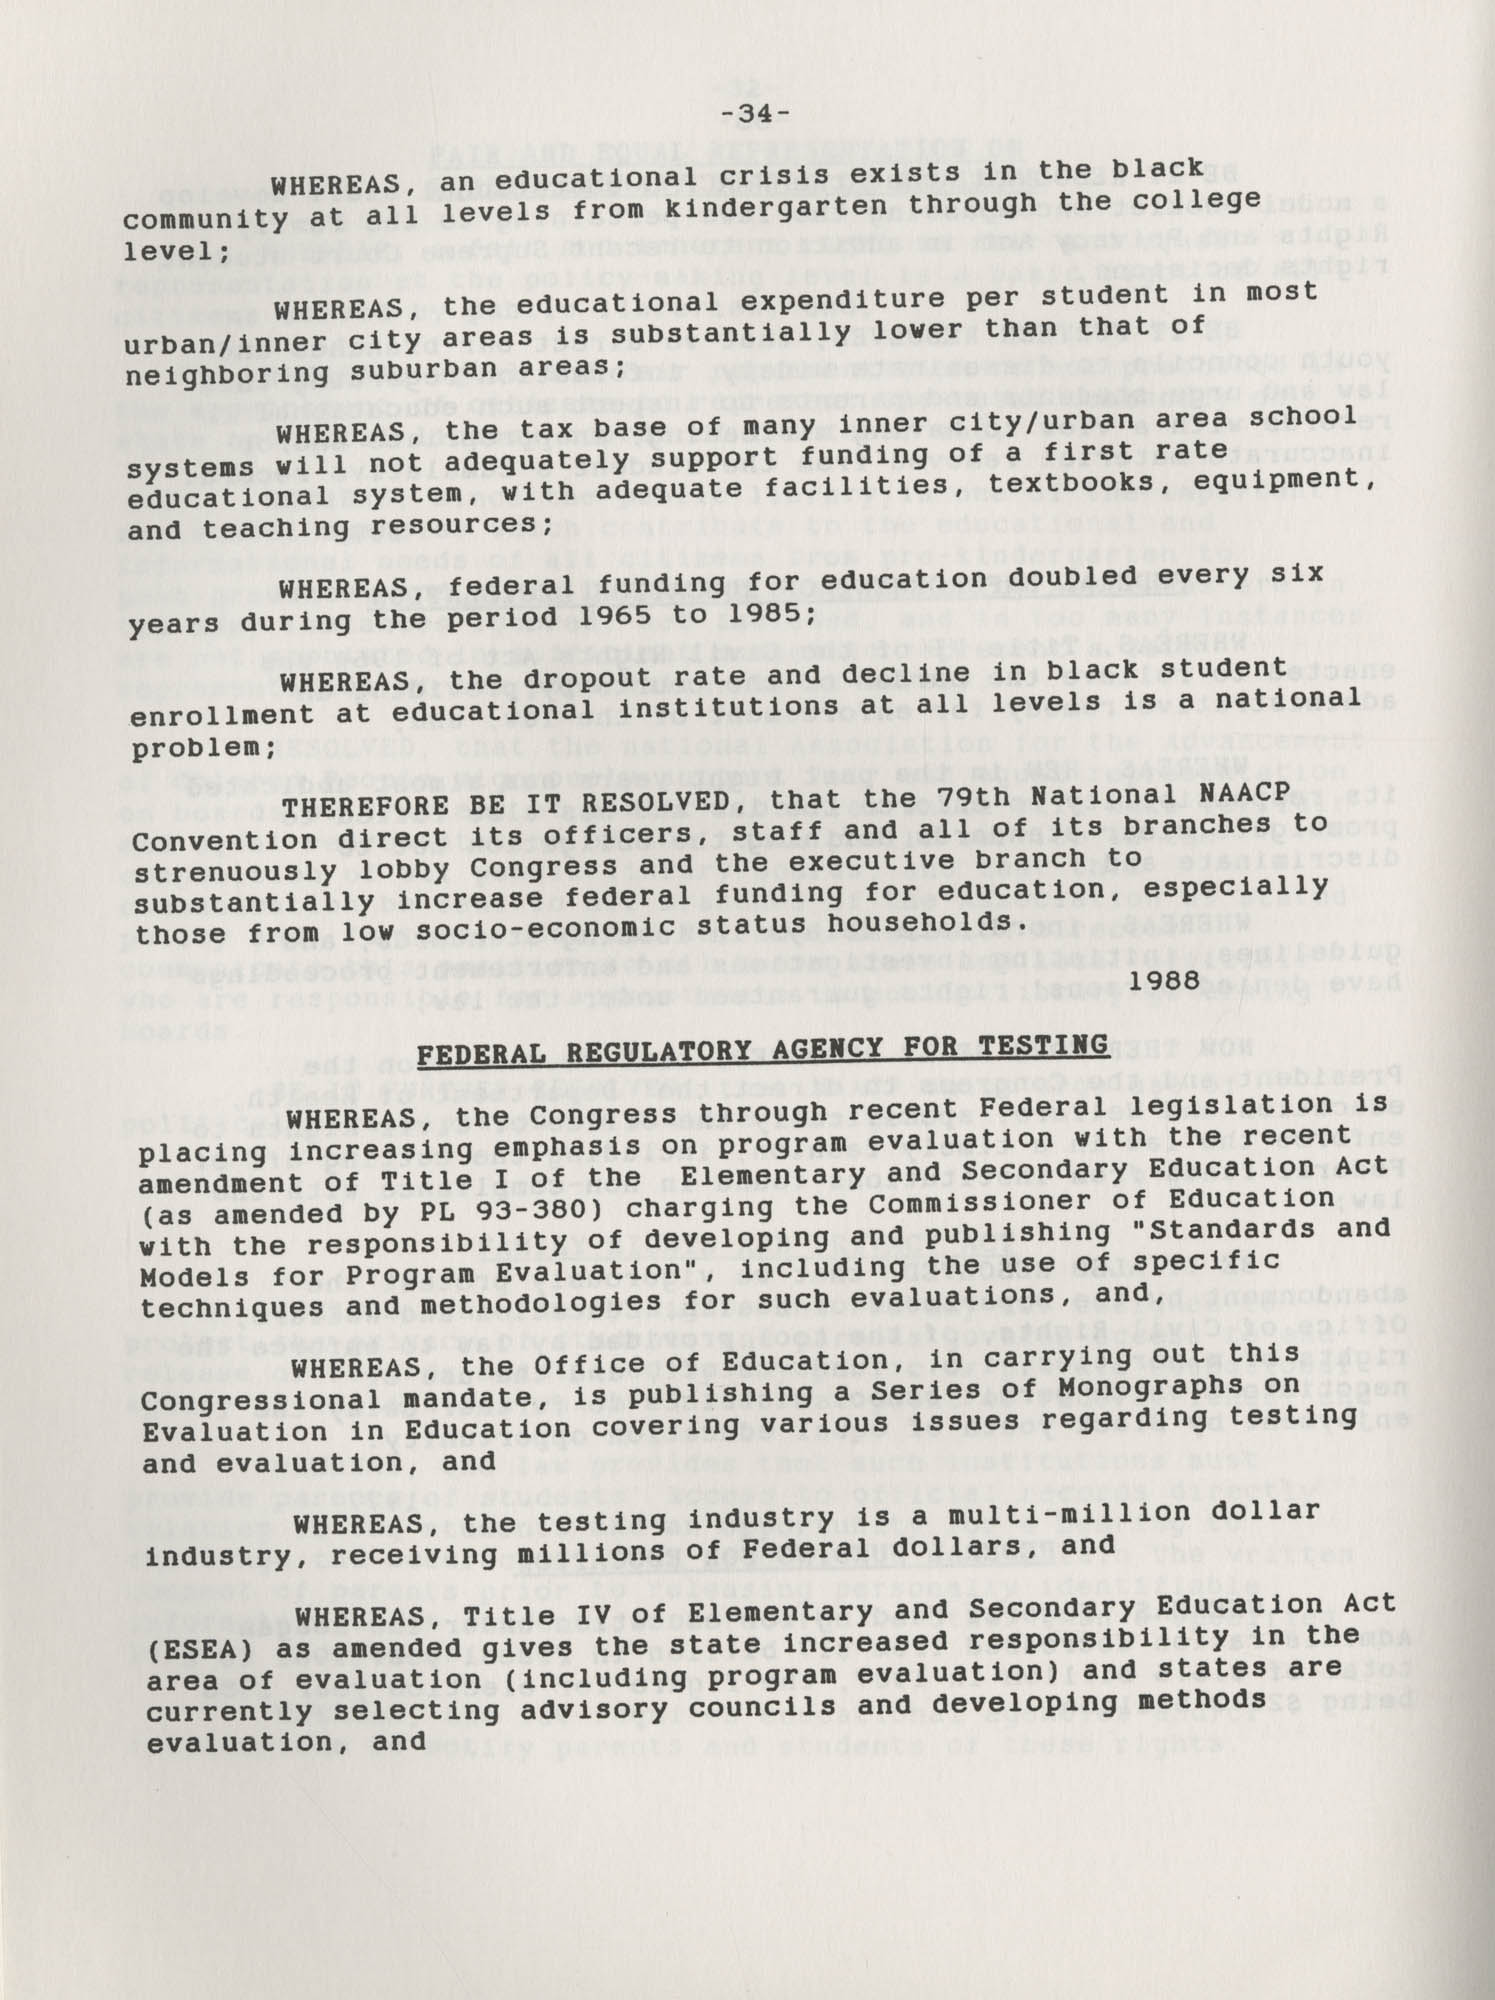 NAACP Resolutions on Education, 1970-1989, Index to Education Resolutions, Page 34